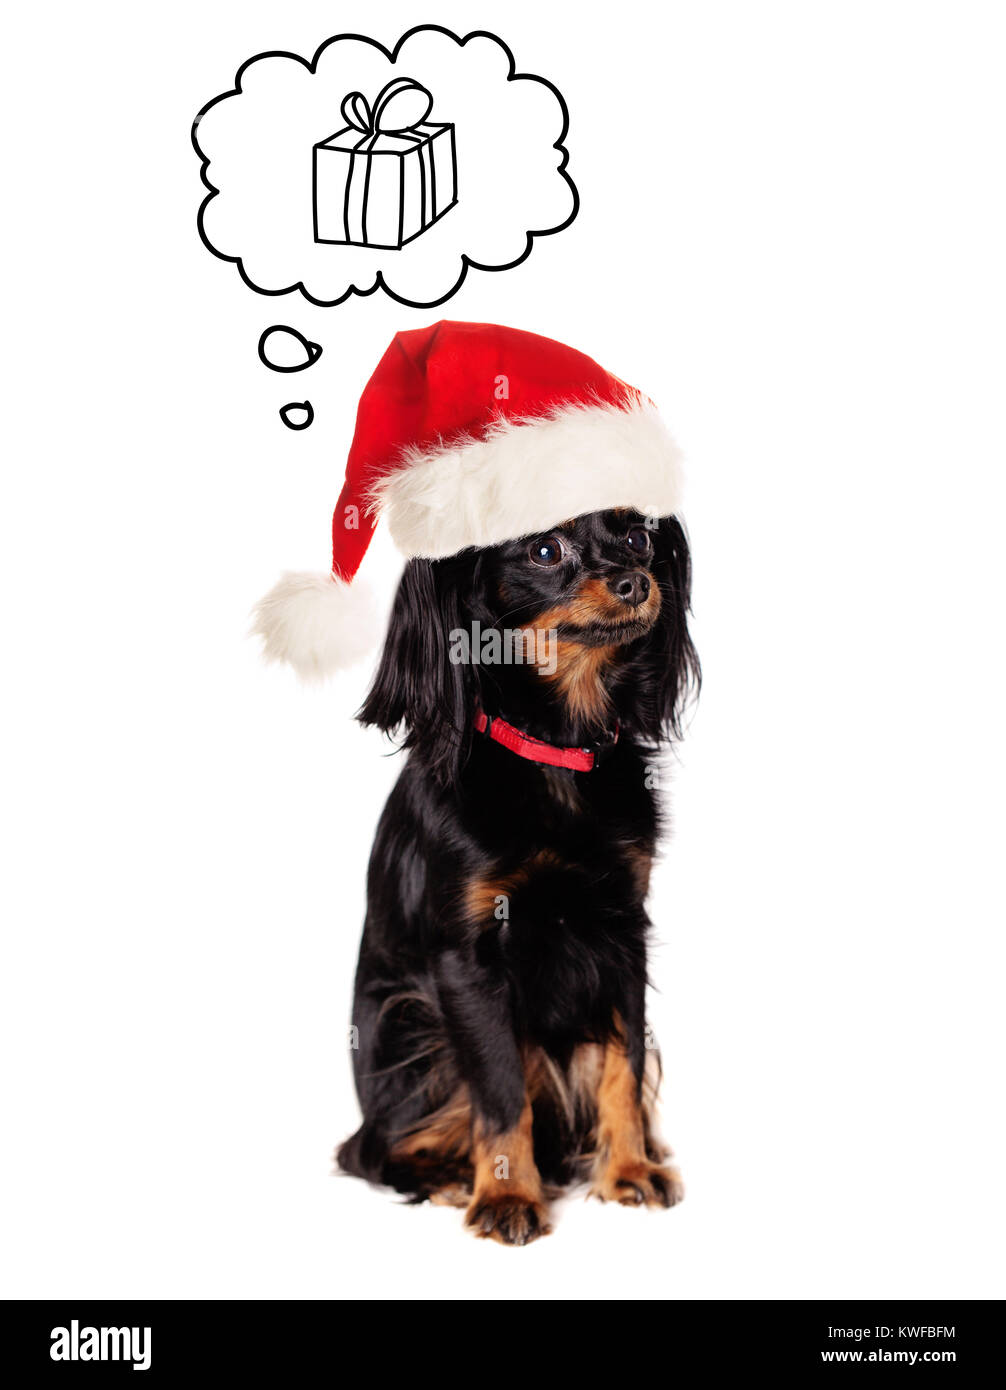 Little Dog in Santa Hat on White Background - Stock Image